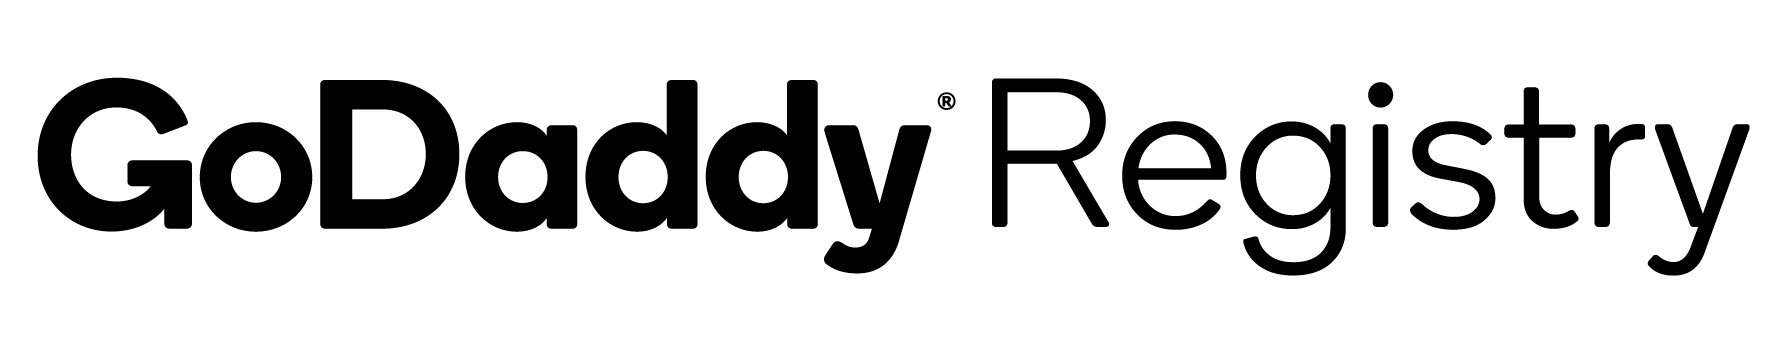 GoDaddy Registry